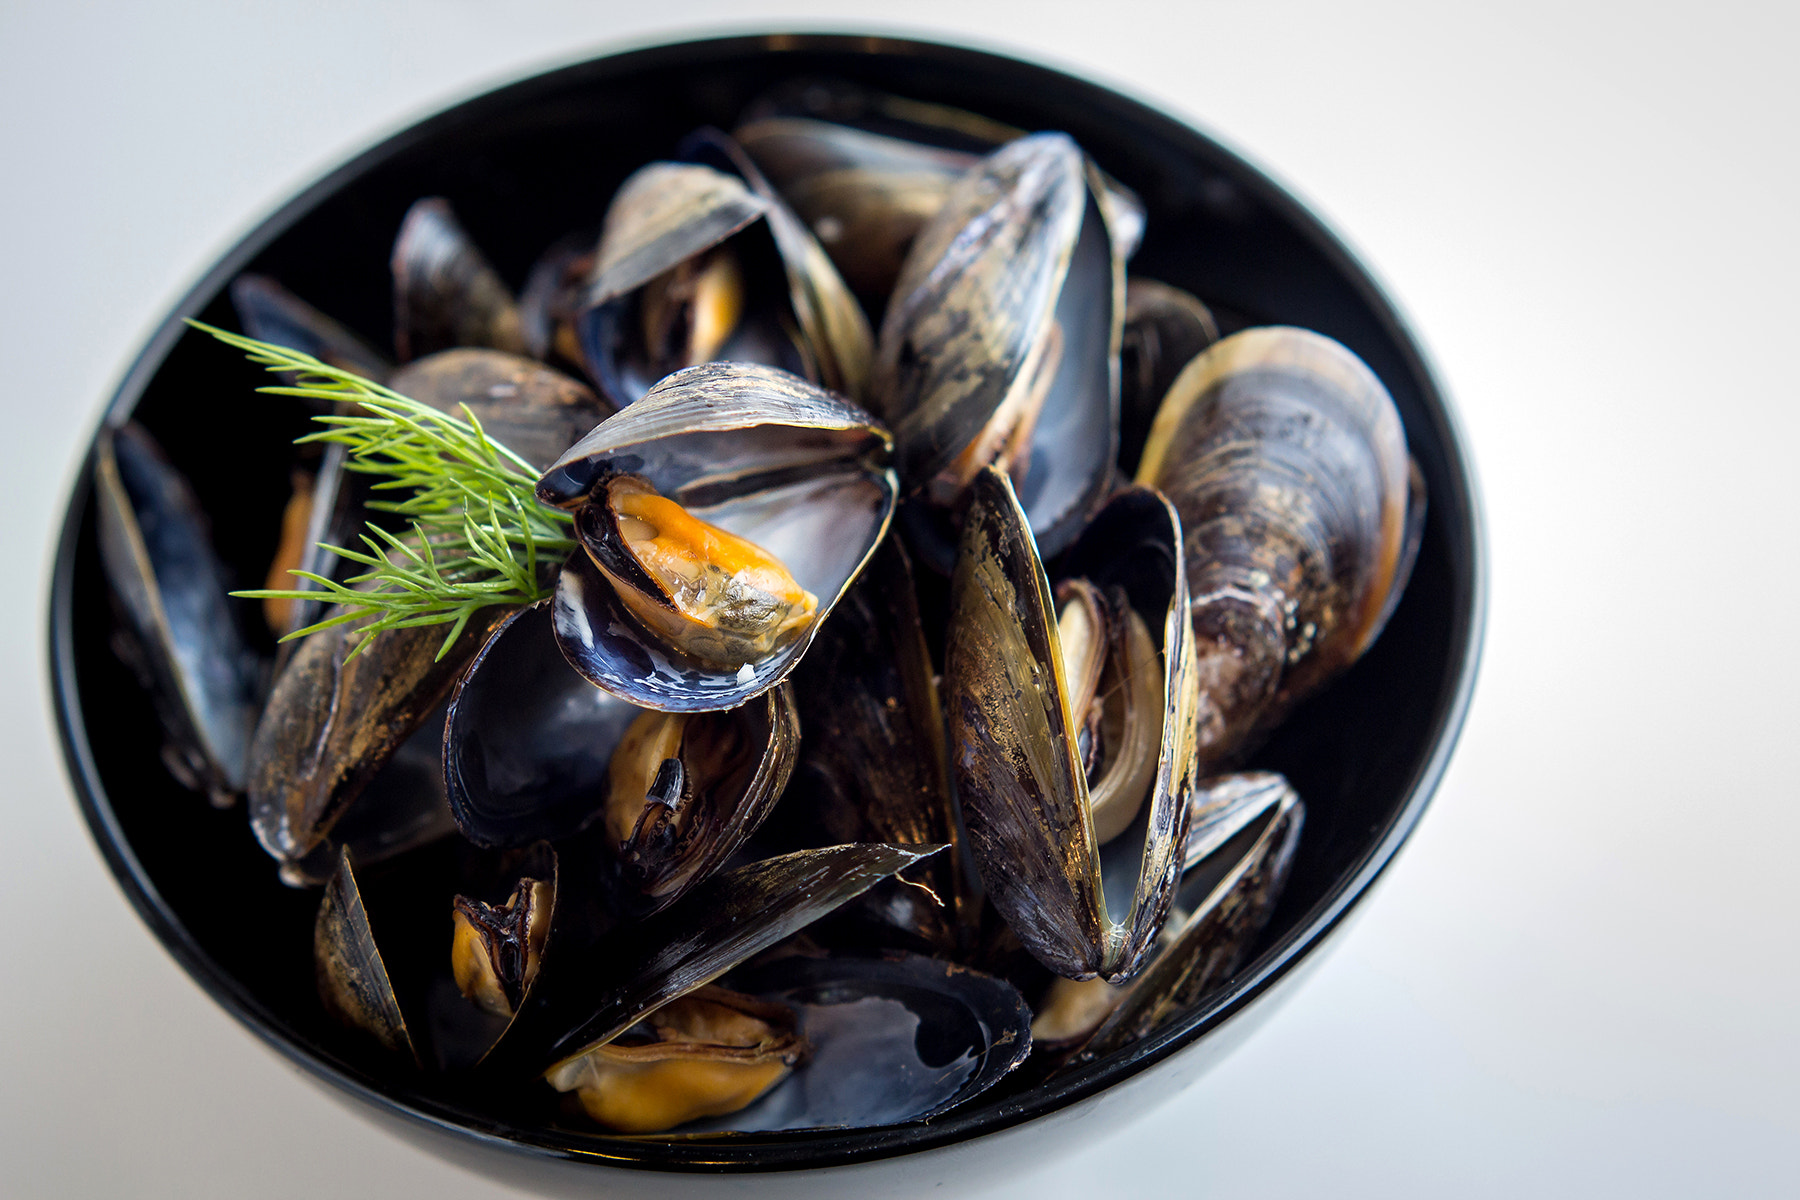 Photograph Steamed Mussels by Scott King on 500px